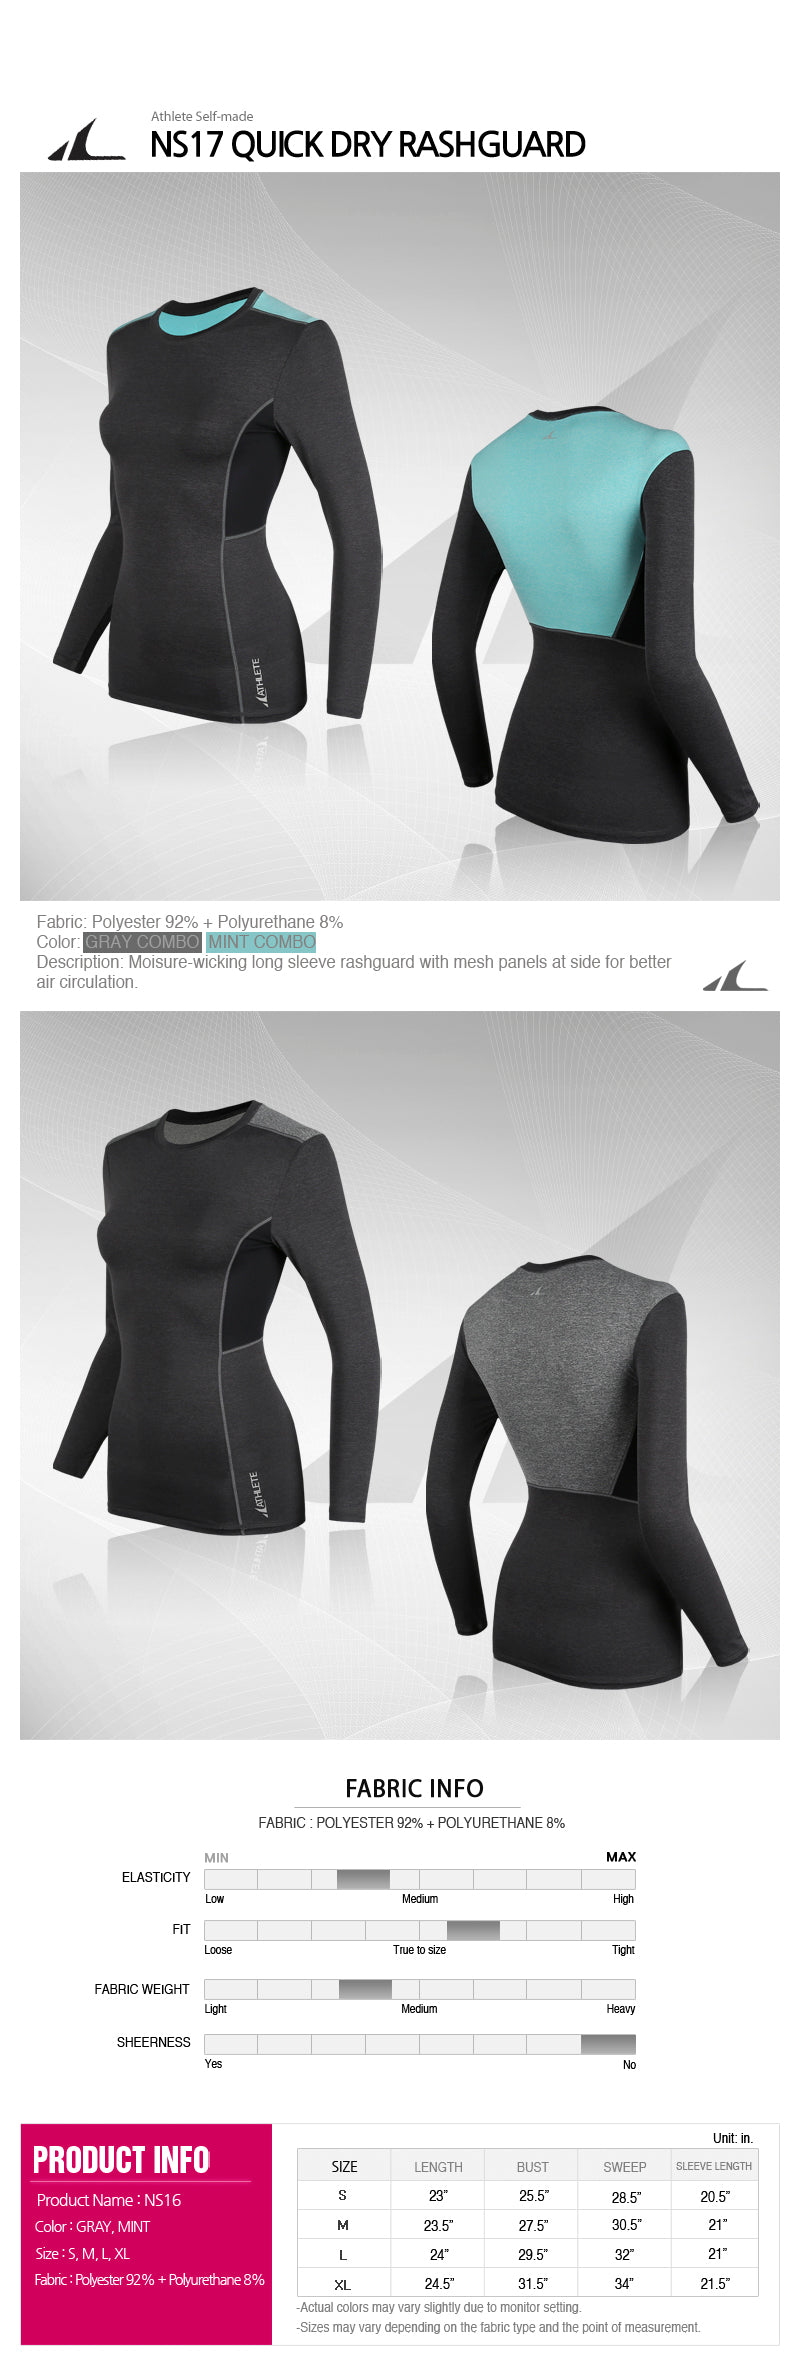 ATHLETE Women's Quick Dry Long Sleeve Rashguard Top, Style NS17